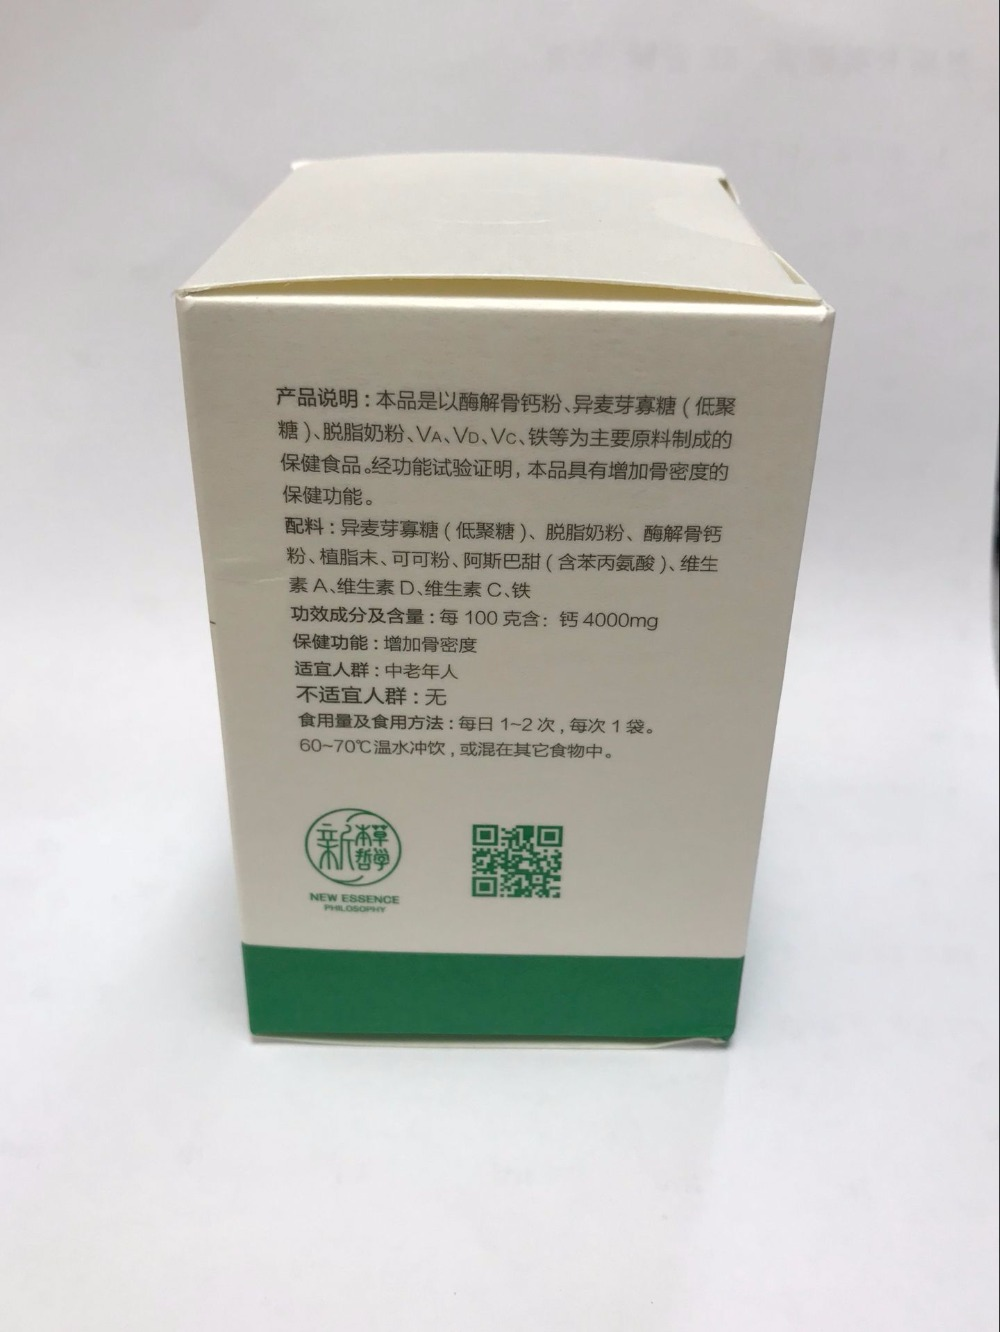 2018 NEW PACKAGE Genuine 2 Boxes Tien Nutrient Super Calcium  Tien.s Super Calcium2018 NEW PACKAGE Genuine 2 Boxes Tien Nutrient Super Calcium  Tien.s Super Calcium